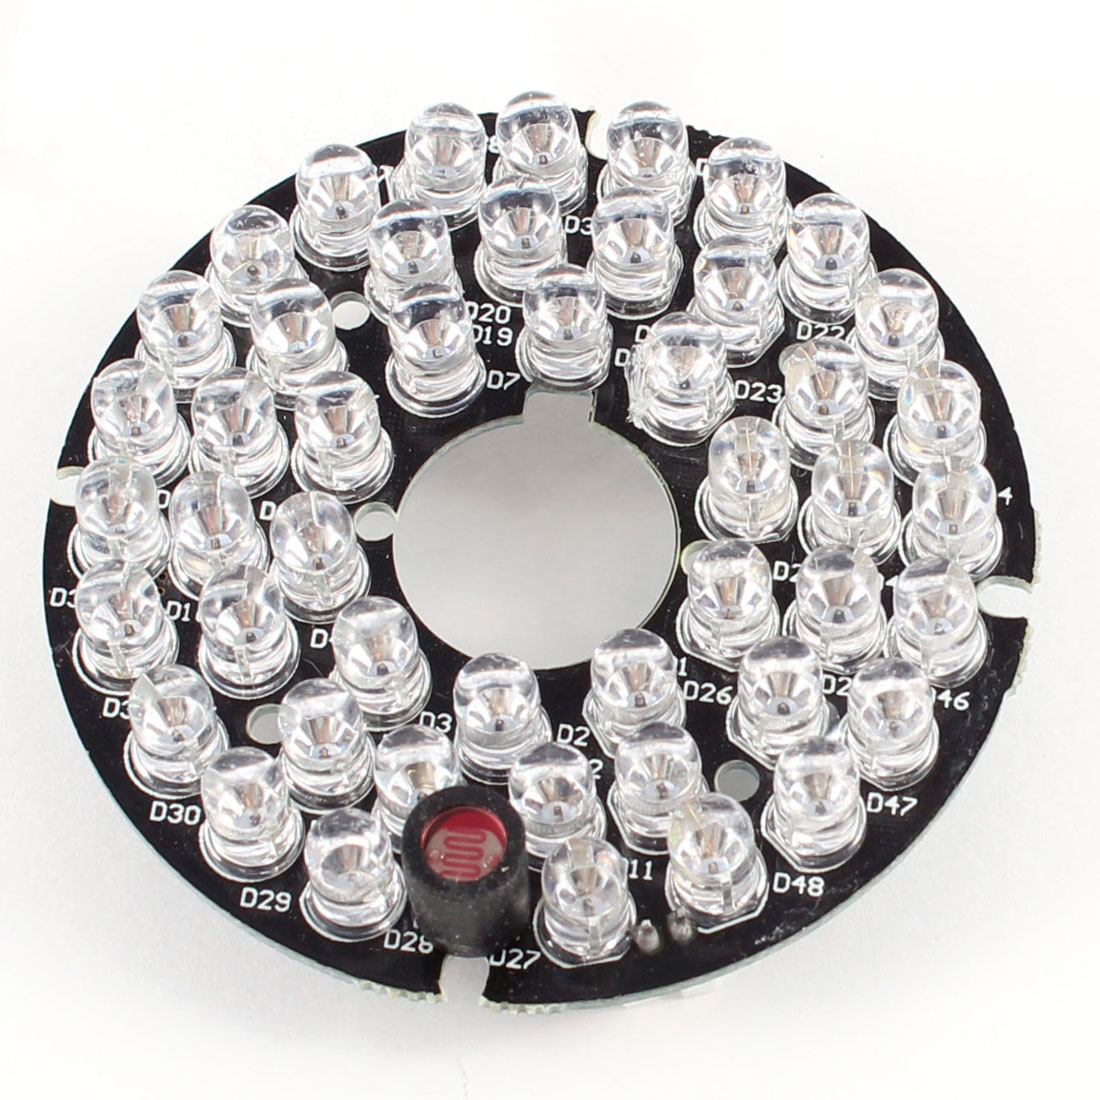 CCTV CCD Camera 60 Degree Bulb Red 48 LEDs Round IR Infrared Board Plate